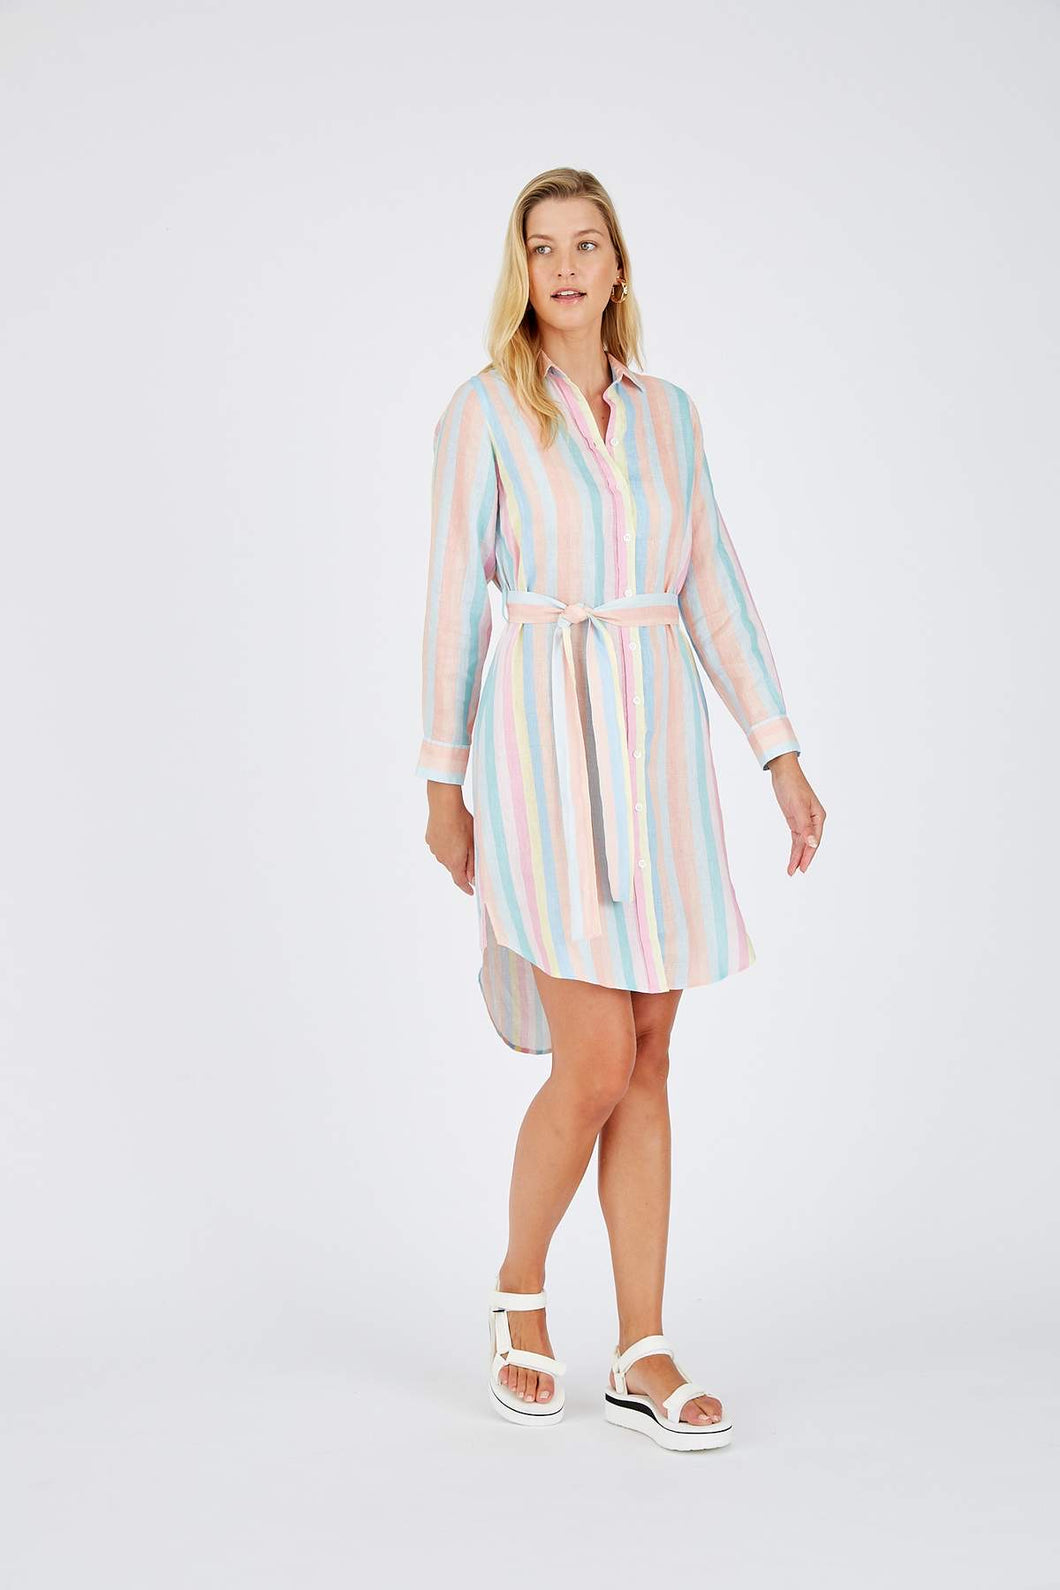 ALESSANDRA SHIRT DRESS IN RAINBOW